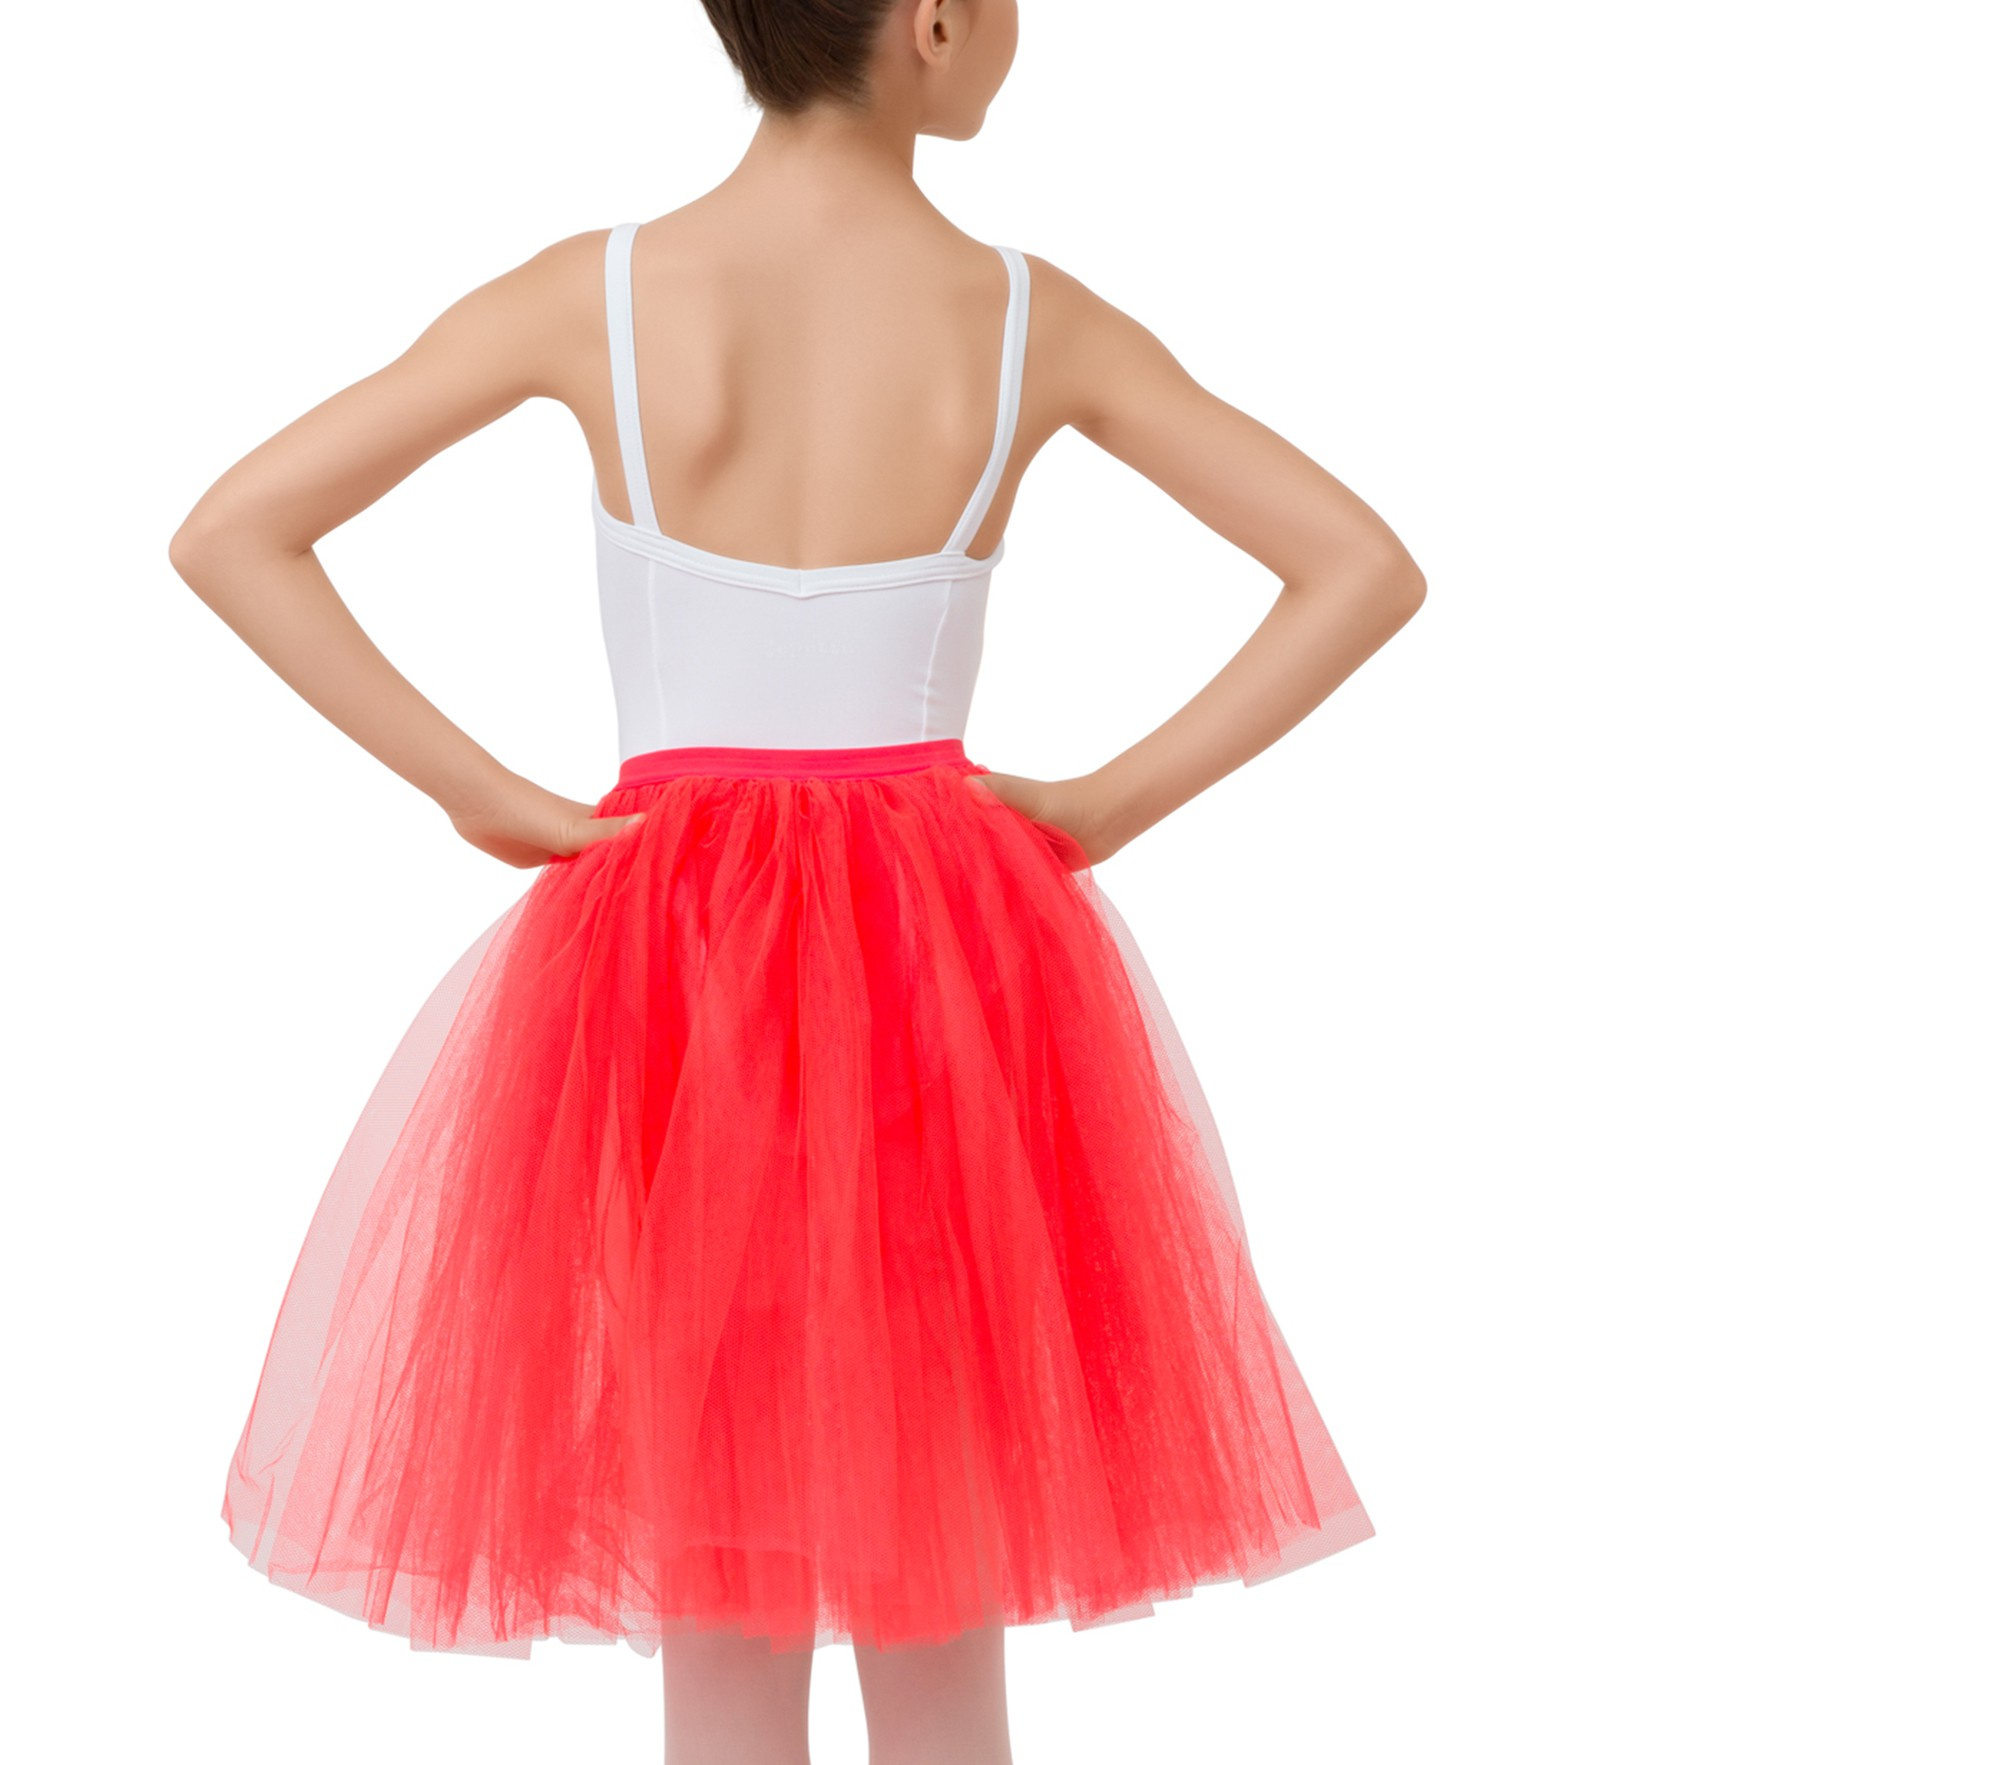 Jupon de tulle long fantaisie fillette